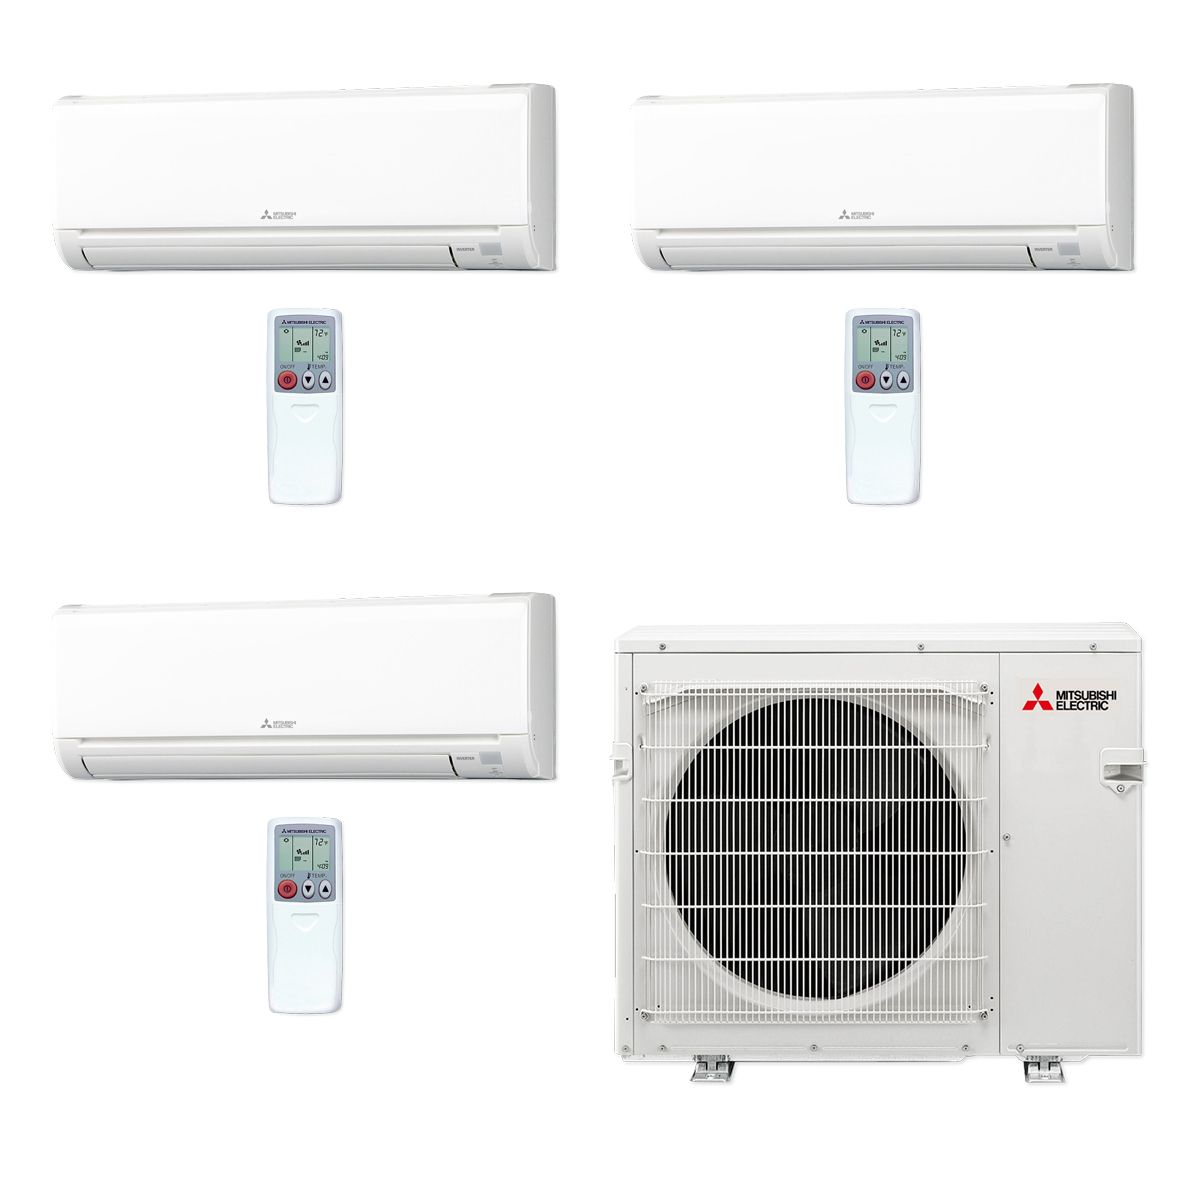 msz conditioner mitsubishi duct currentforce ac air form system split enquiry no